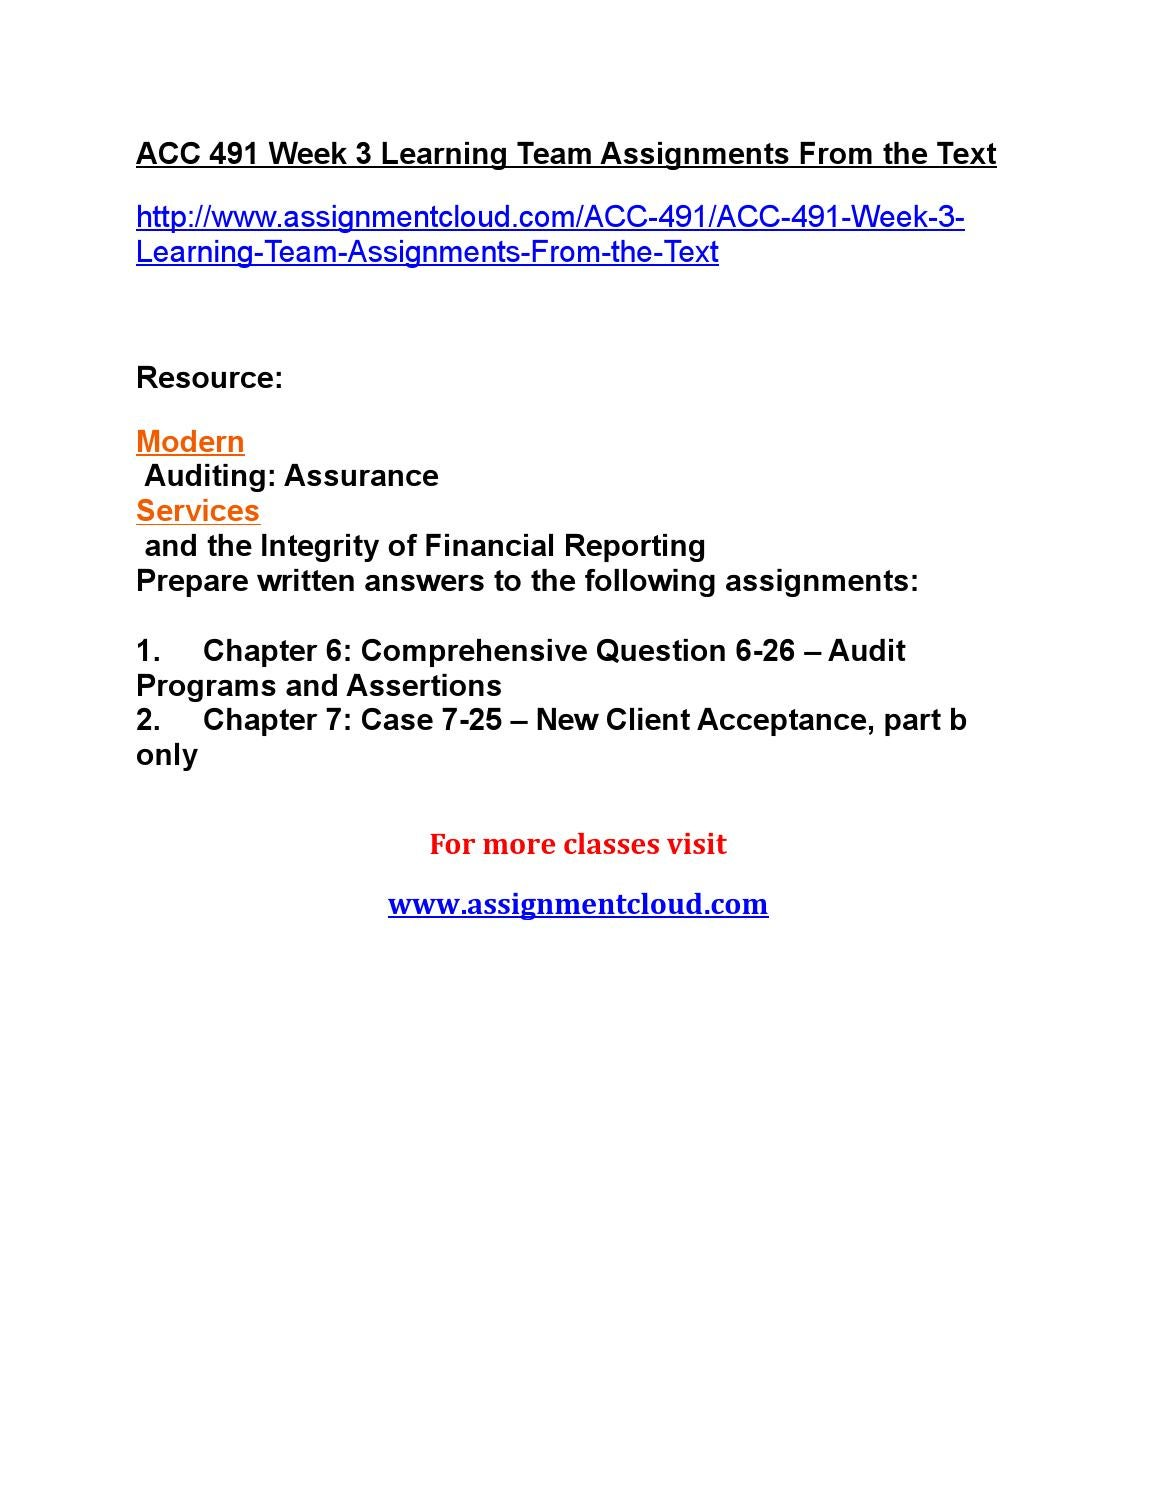 ACC 491 Week 4 Individual Study Guide Chapters 8, 10, and 11